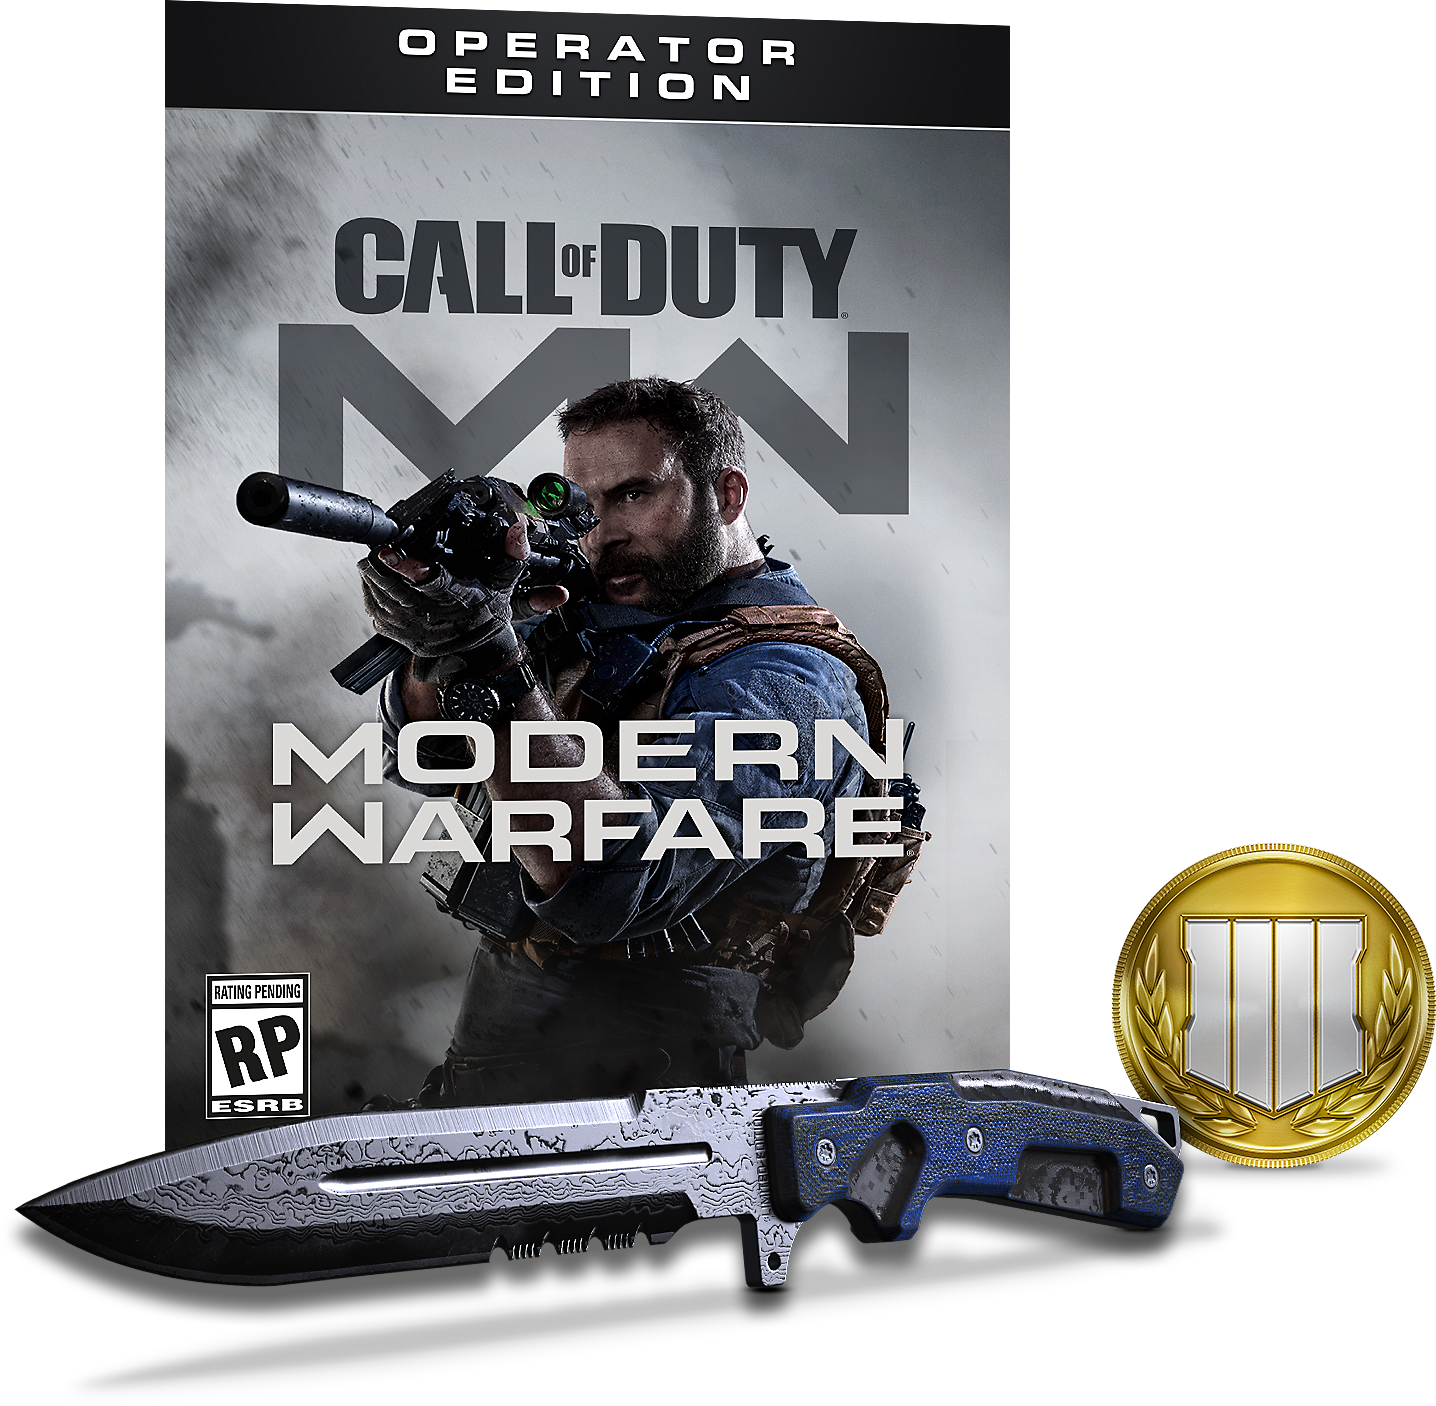 Call of Duty Modern Warfare Operator Edition Digital Items